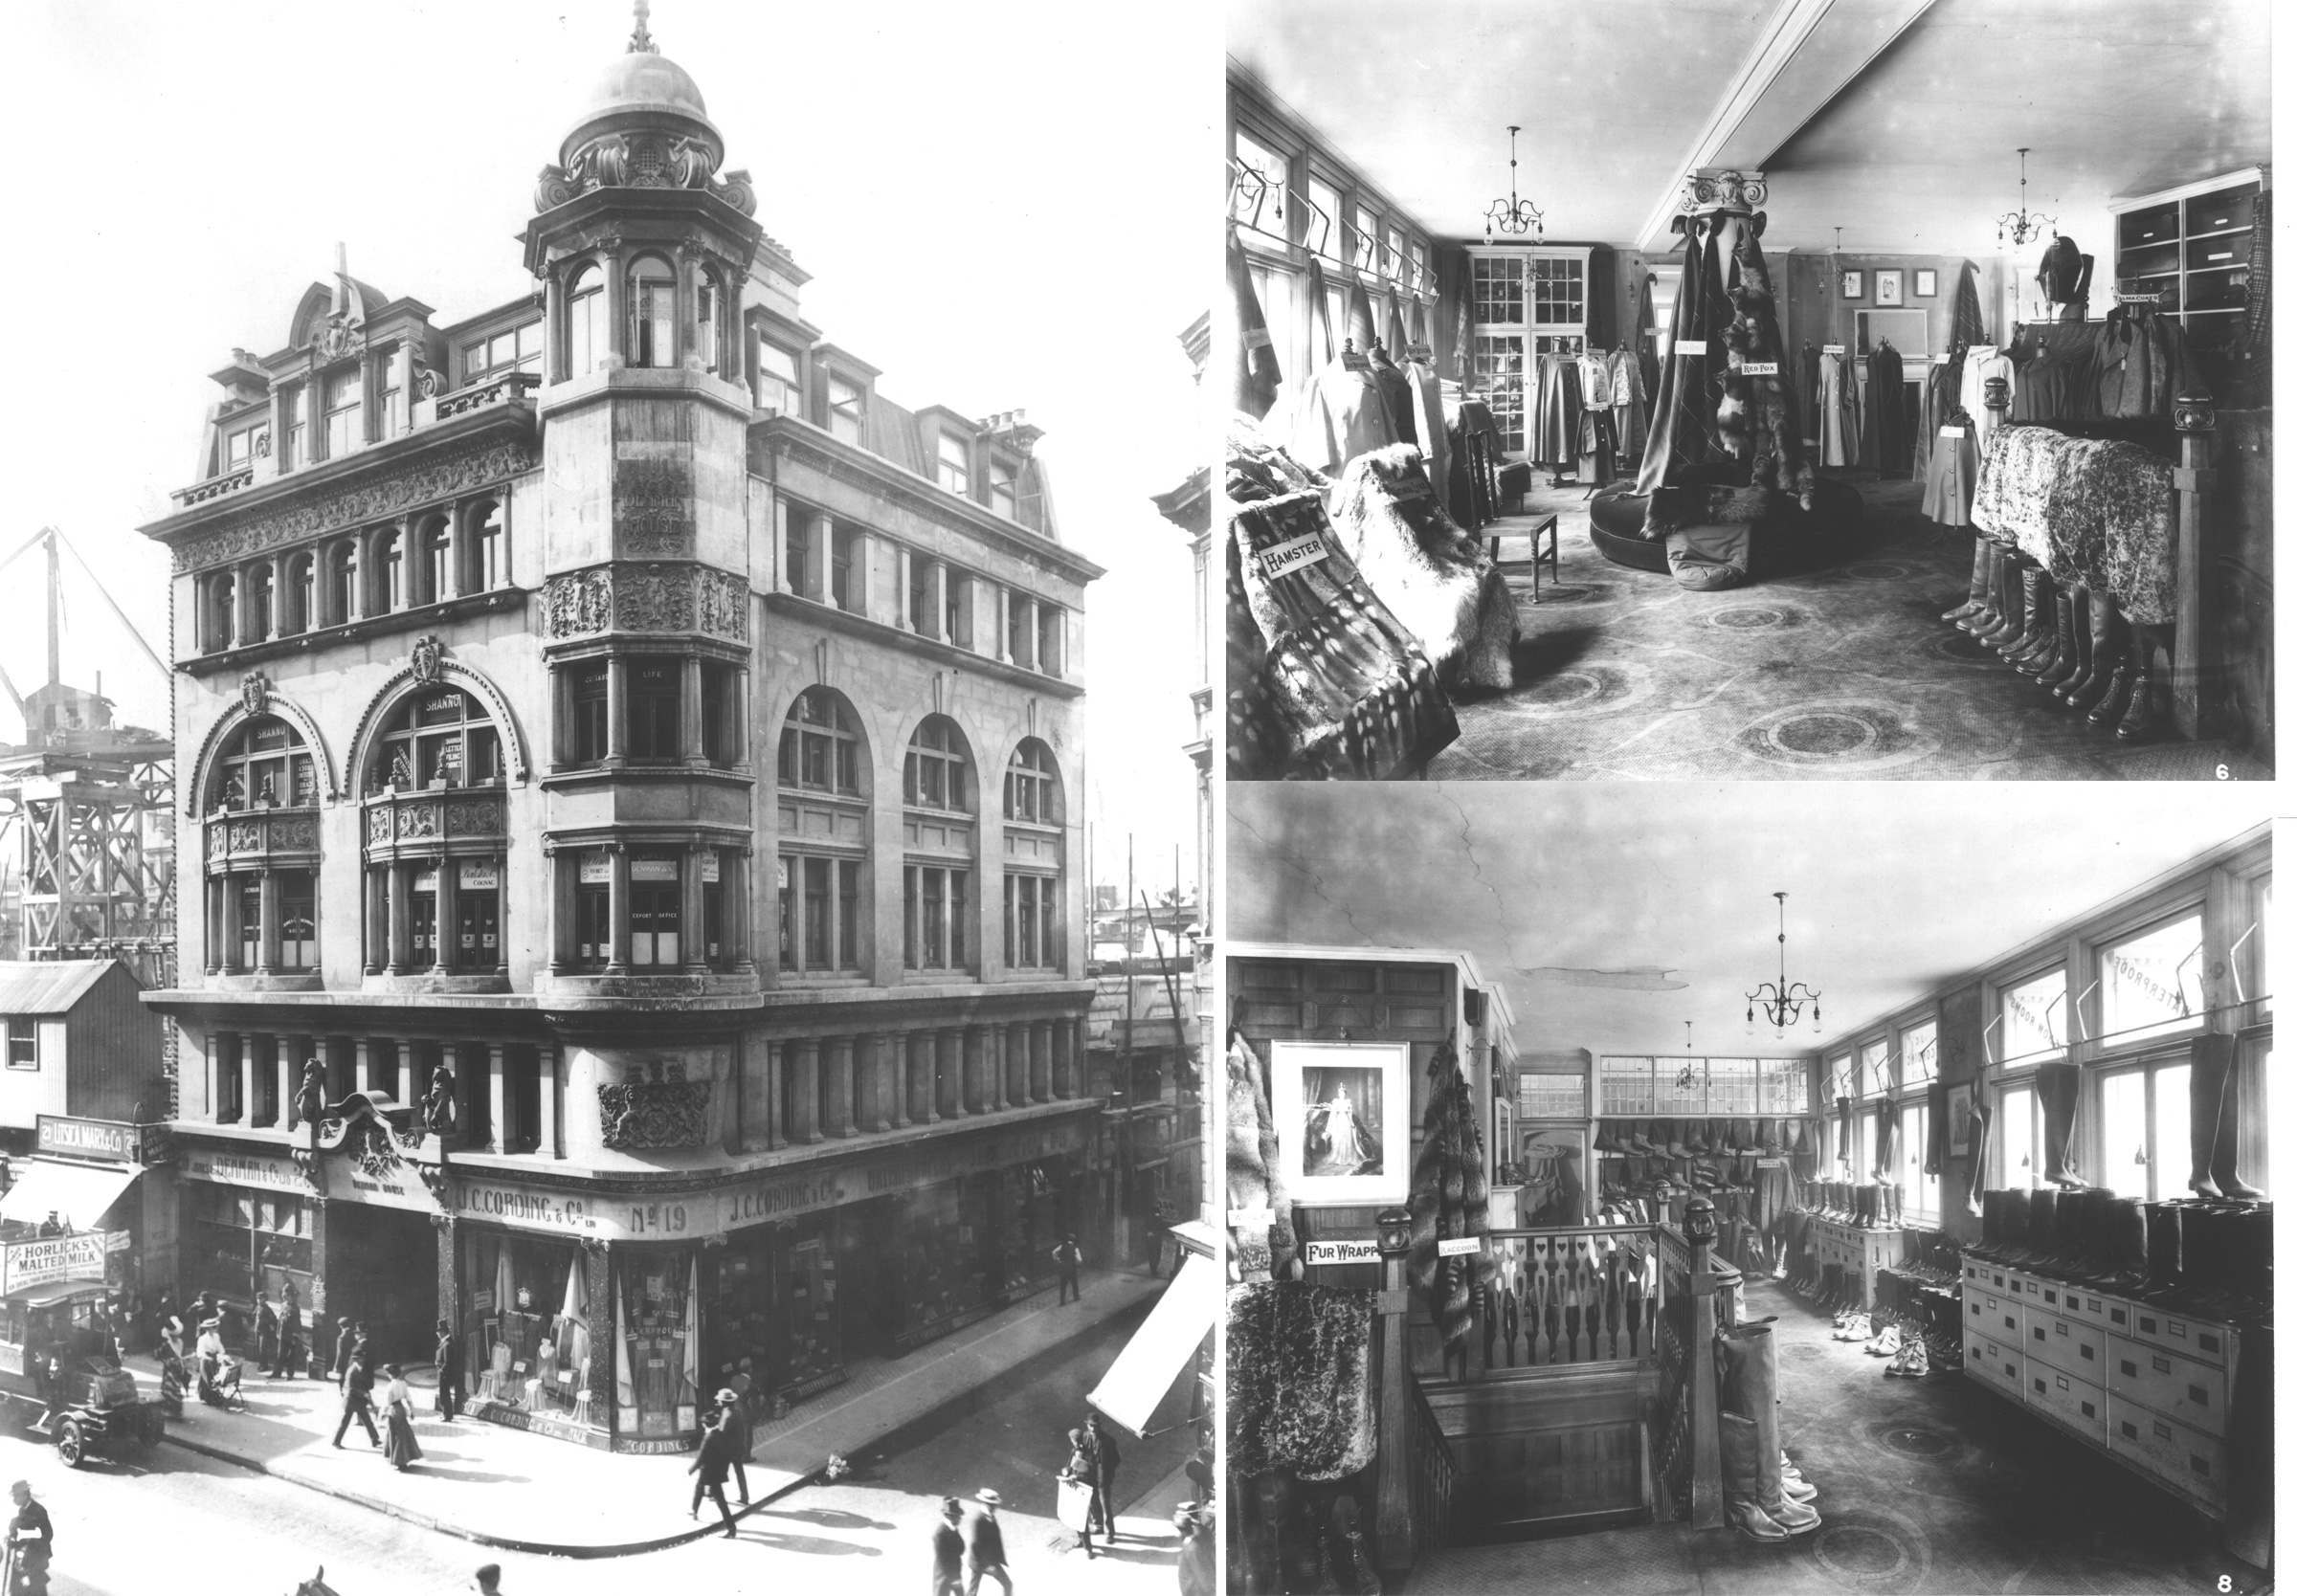 19 Piccadilly opens in 1877